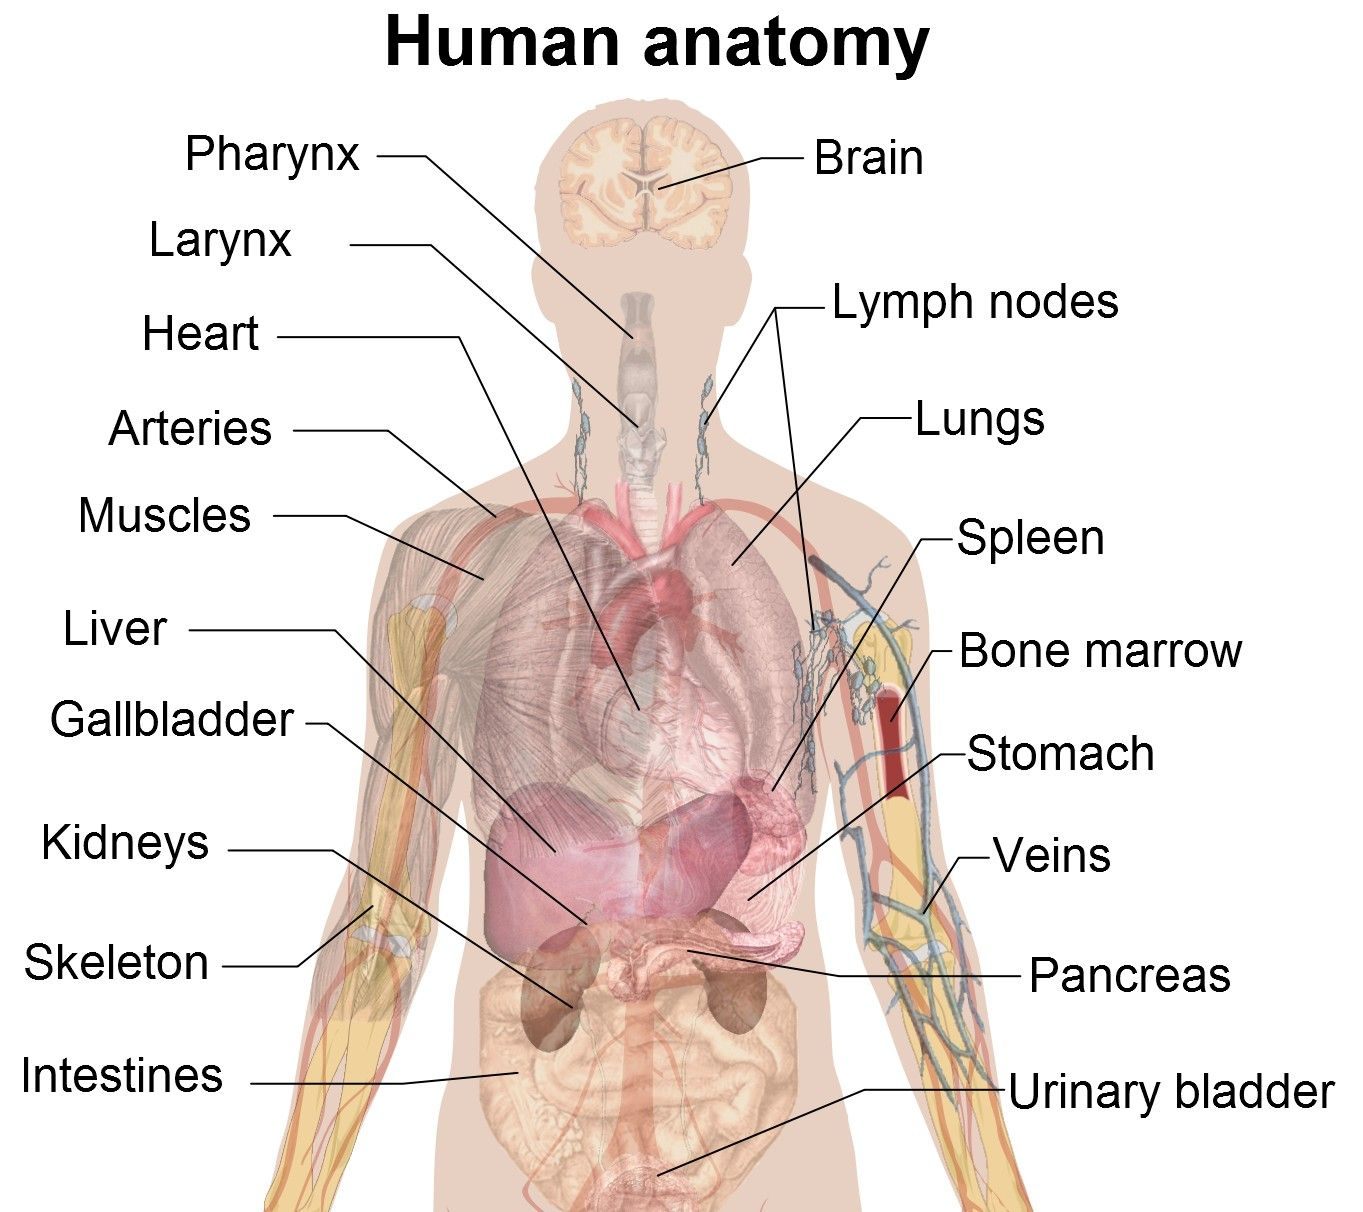 hight resolution of simple human anatomy diagram simple human anatomy diagram all about human body pictures anatomy diagrams